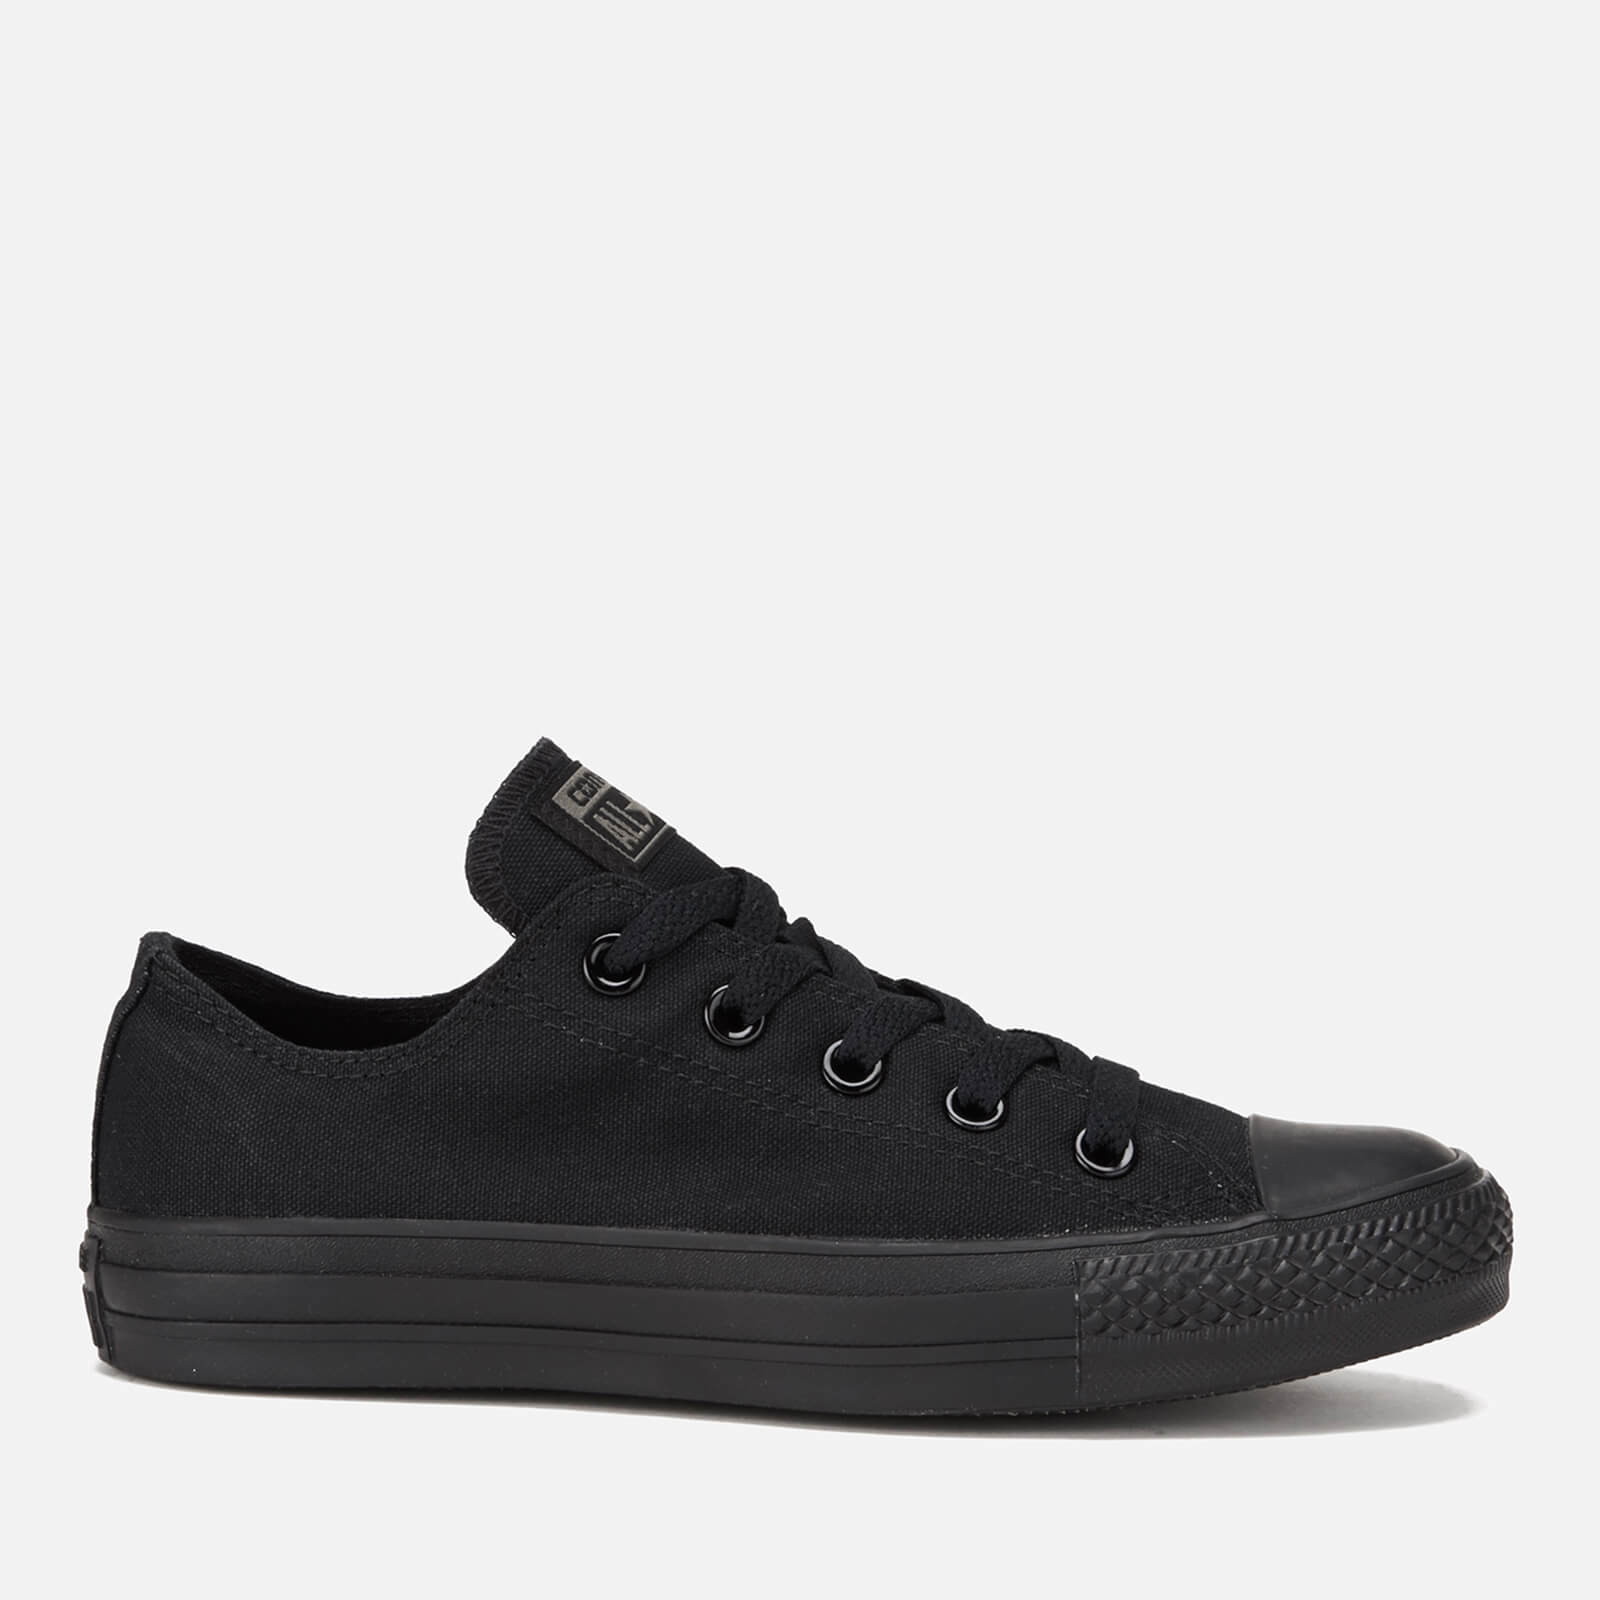 99d270d9b10c Converse Chuck Taylor All Star Ox Canvas Trainers - Black Monochrome ...